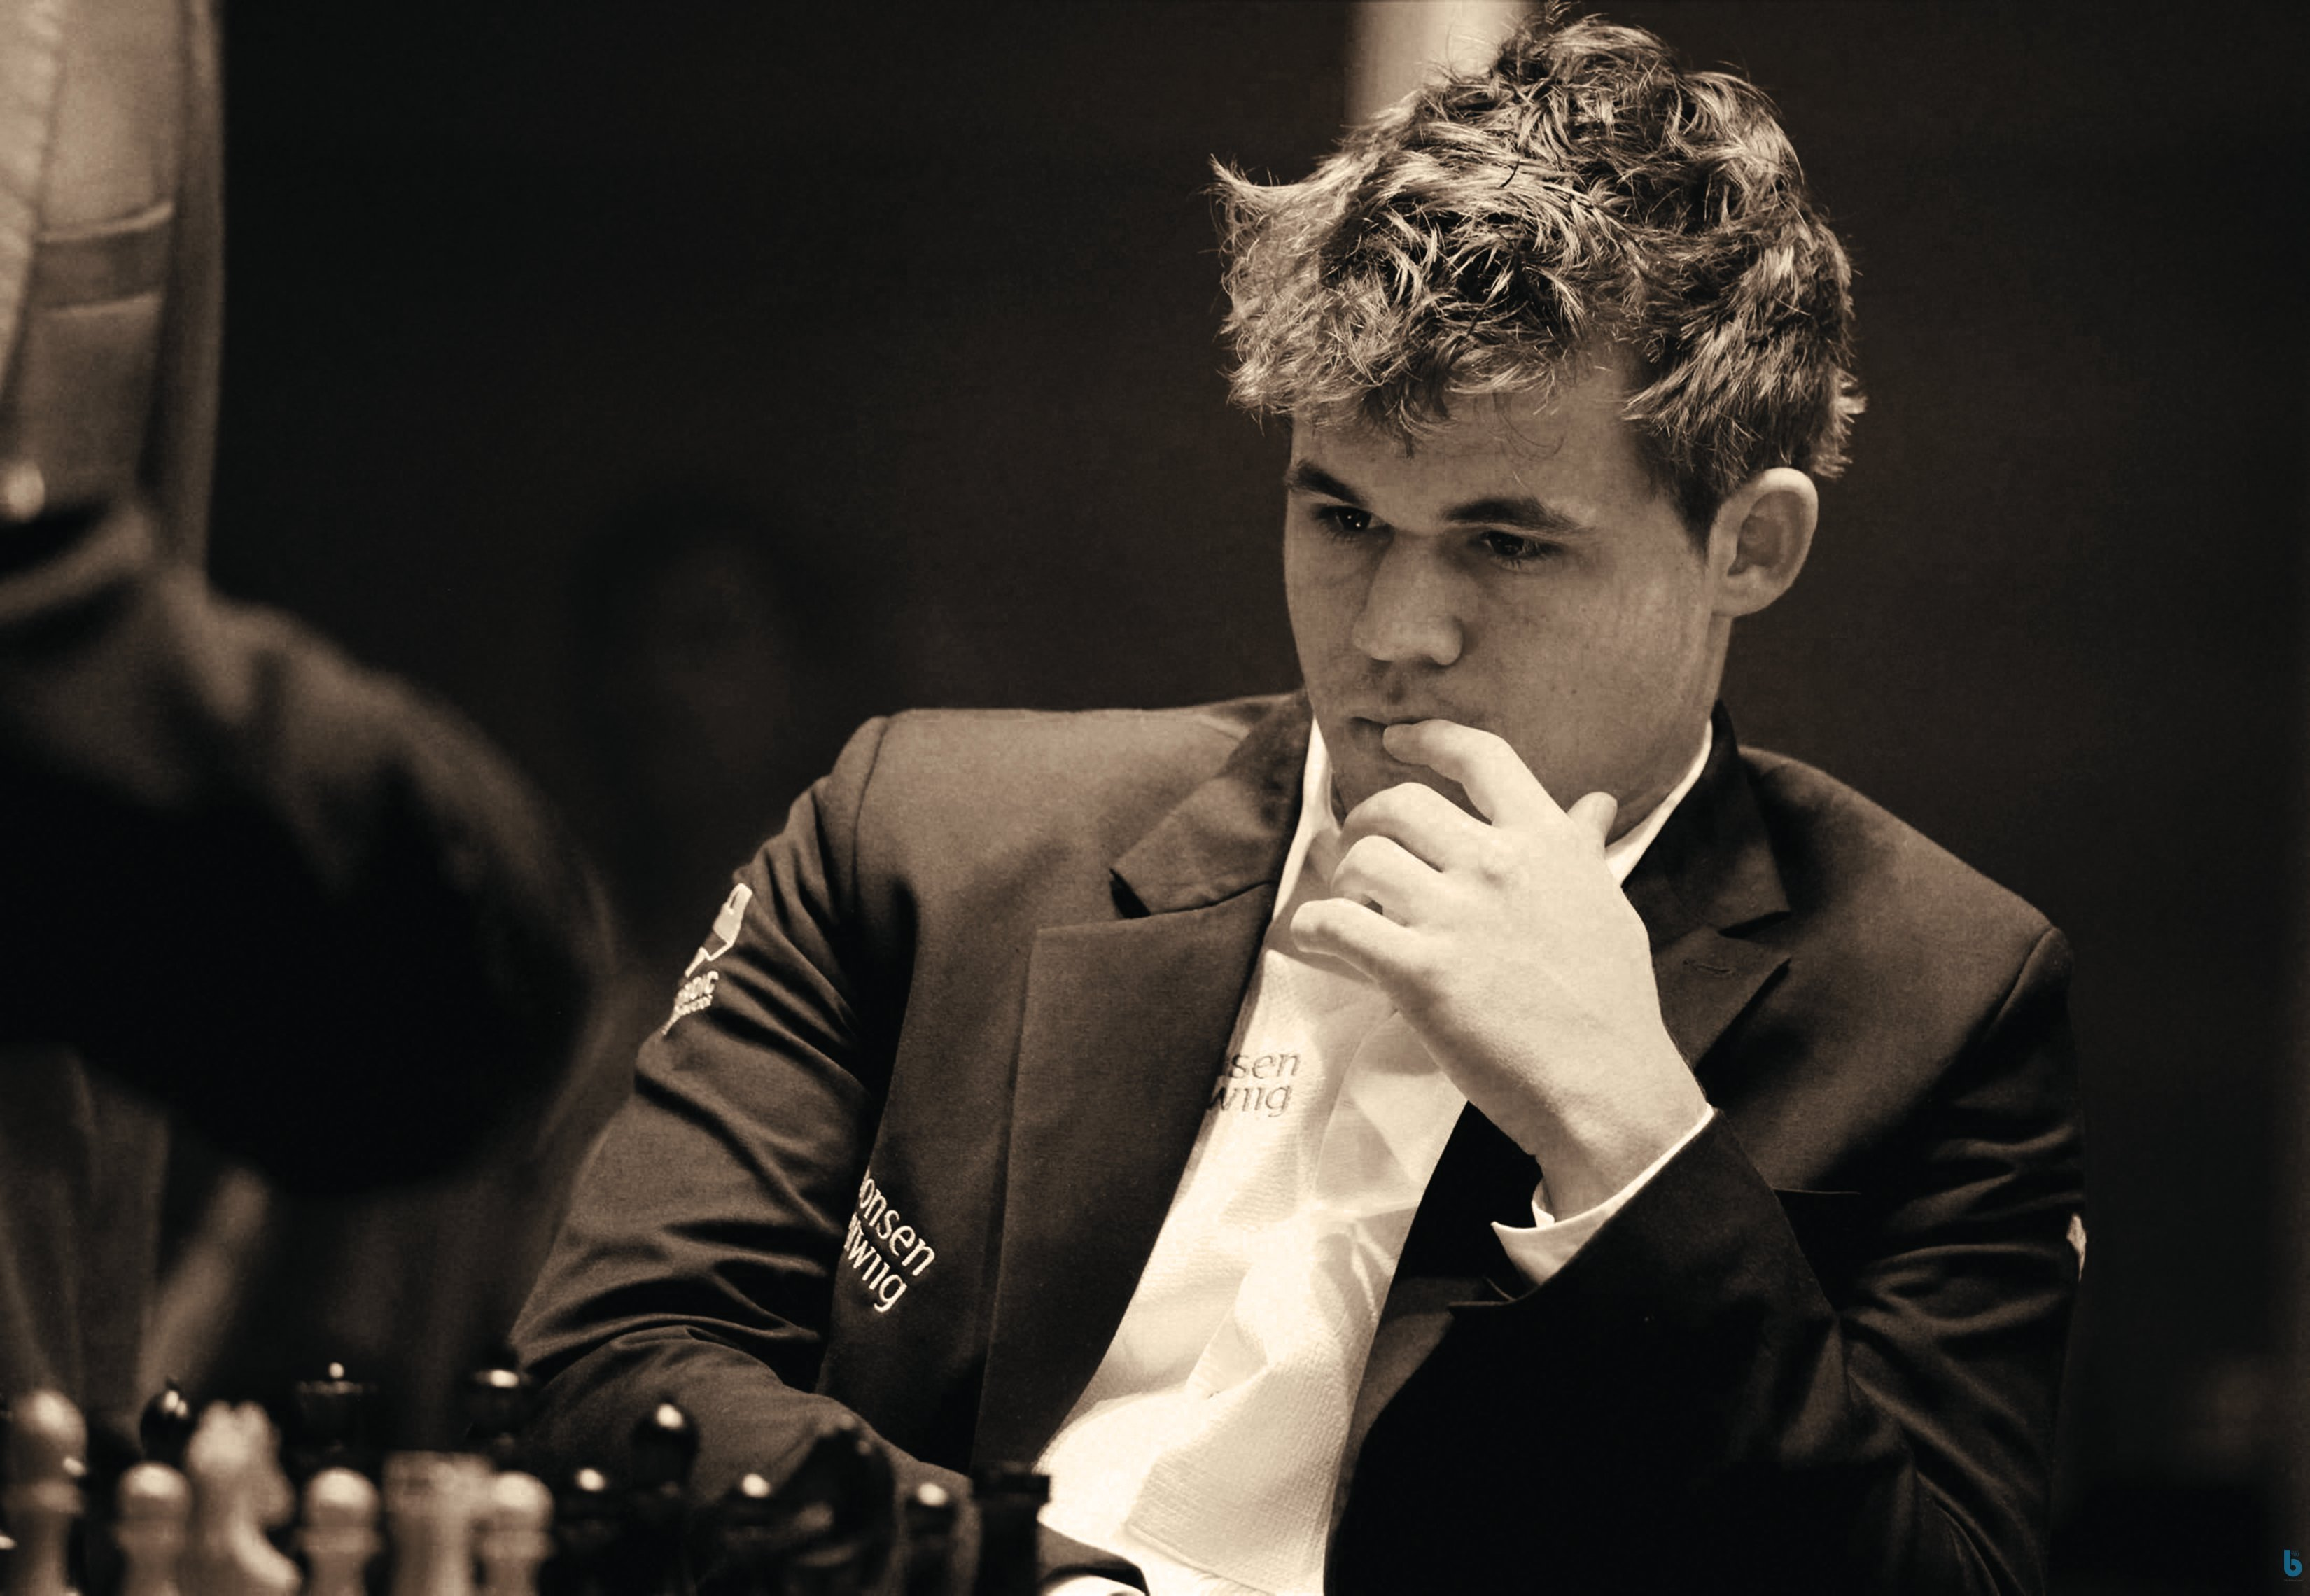 FIDE World Chess Federation Online ratings individual calculations